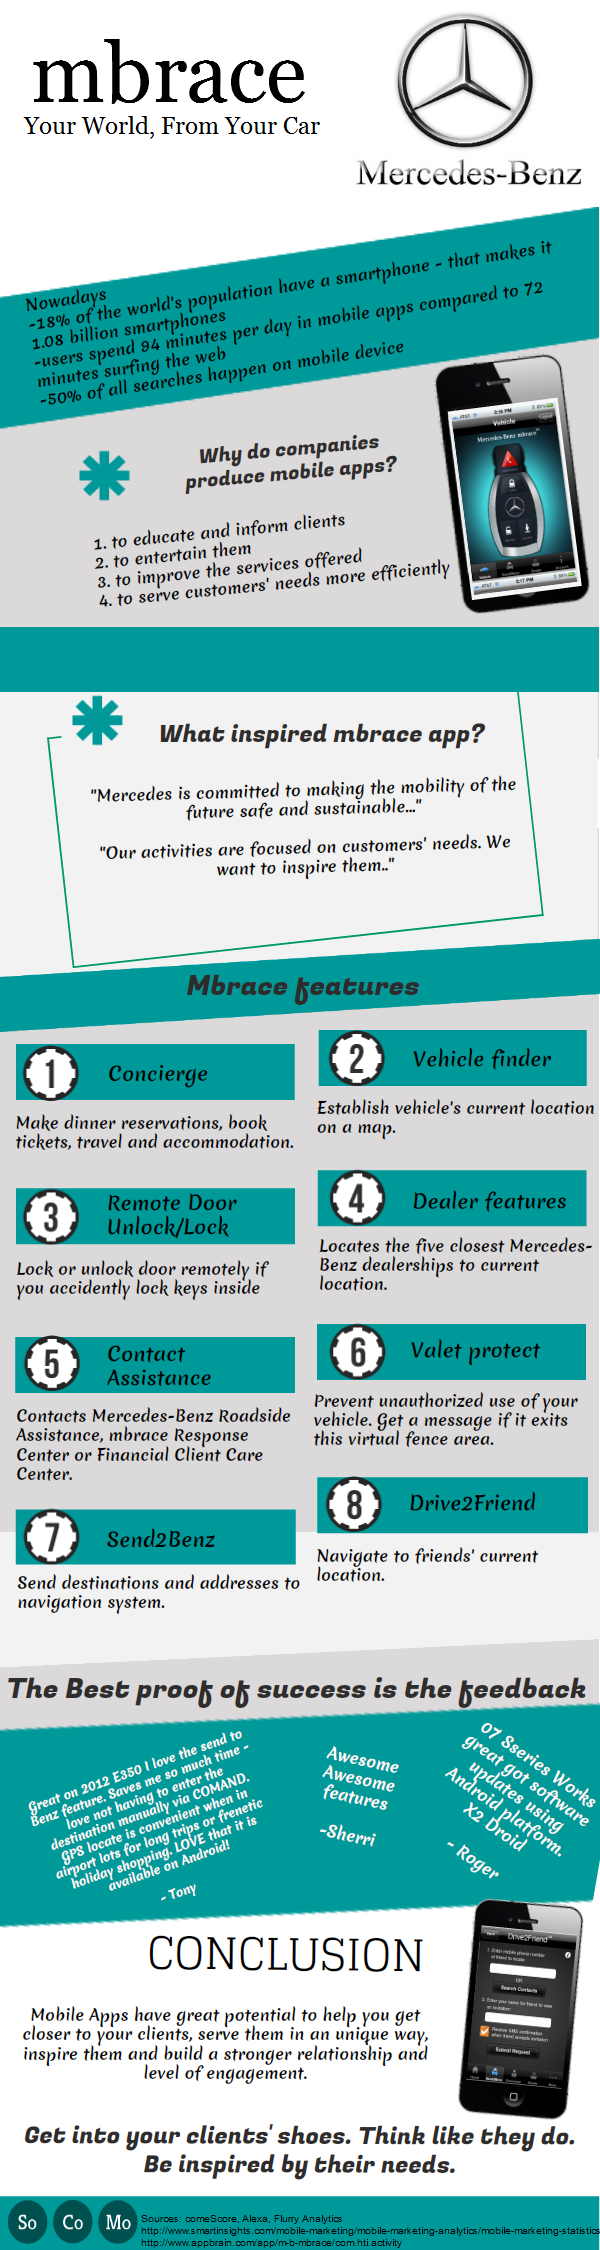 Mbrace Your World, From Your Car [INFOGRAPHIC] Mbrace